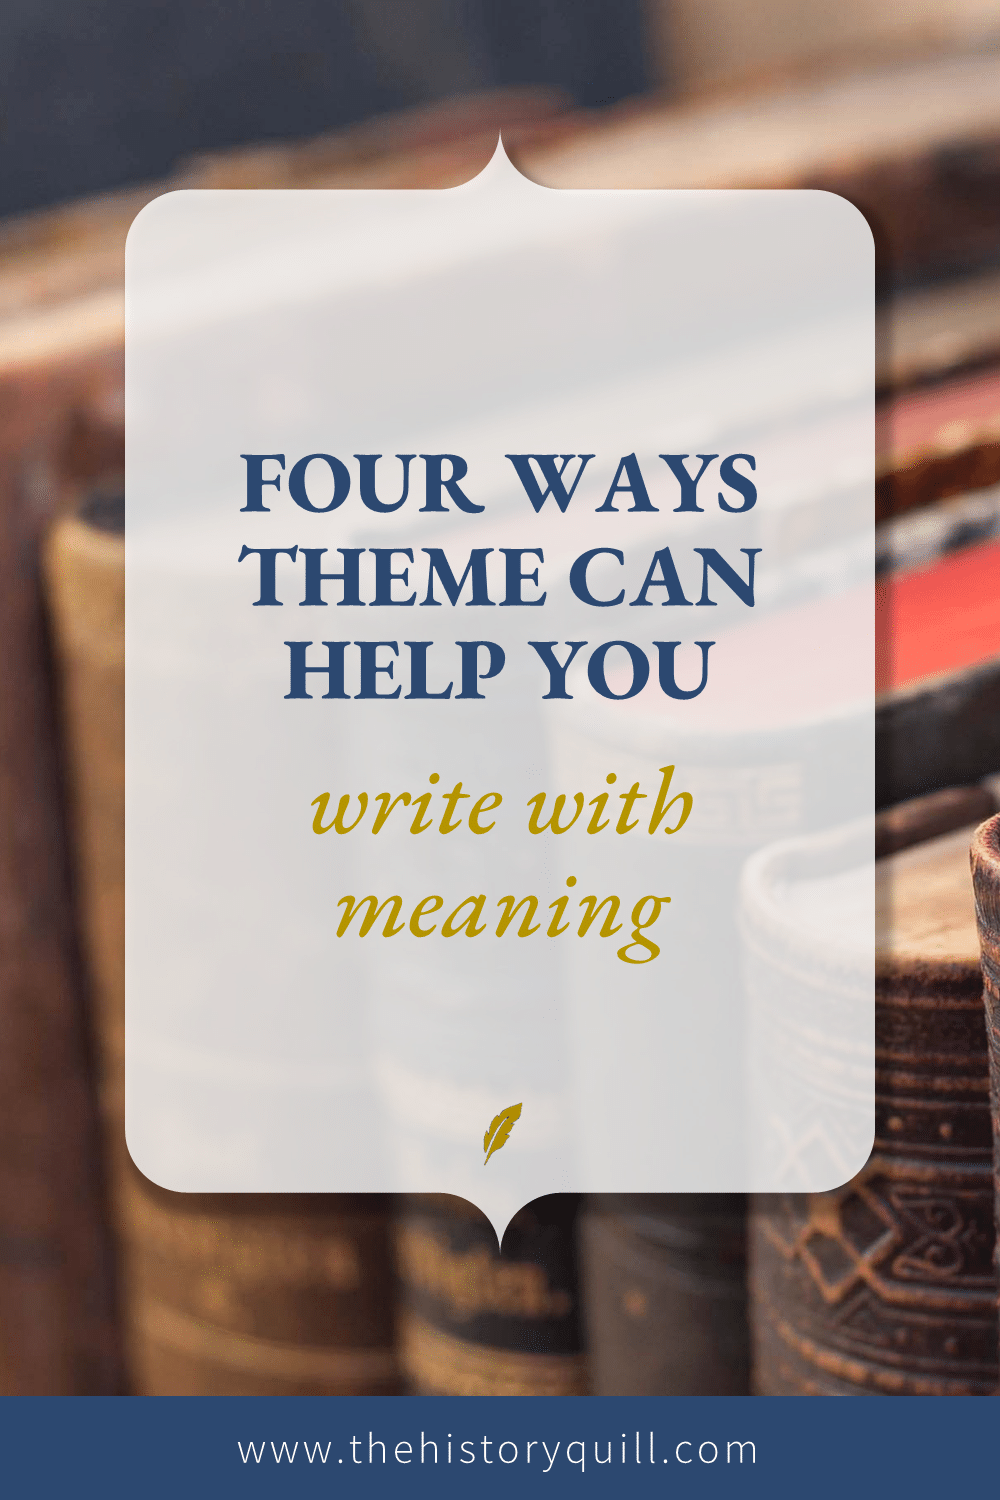 From The History Quill blog, four ways theme can help you write with meaning in your historical fiction